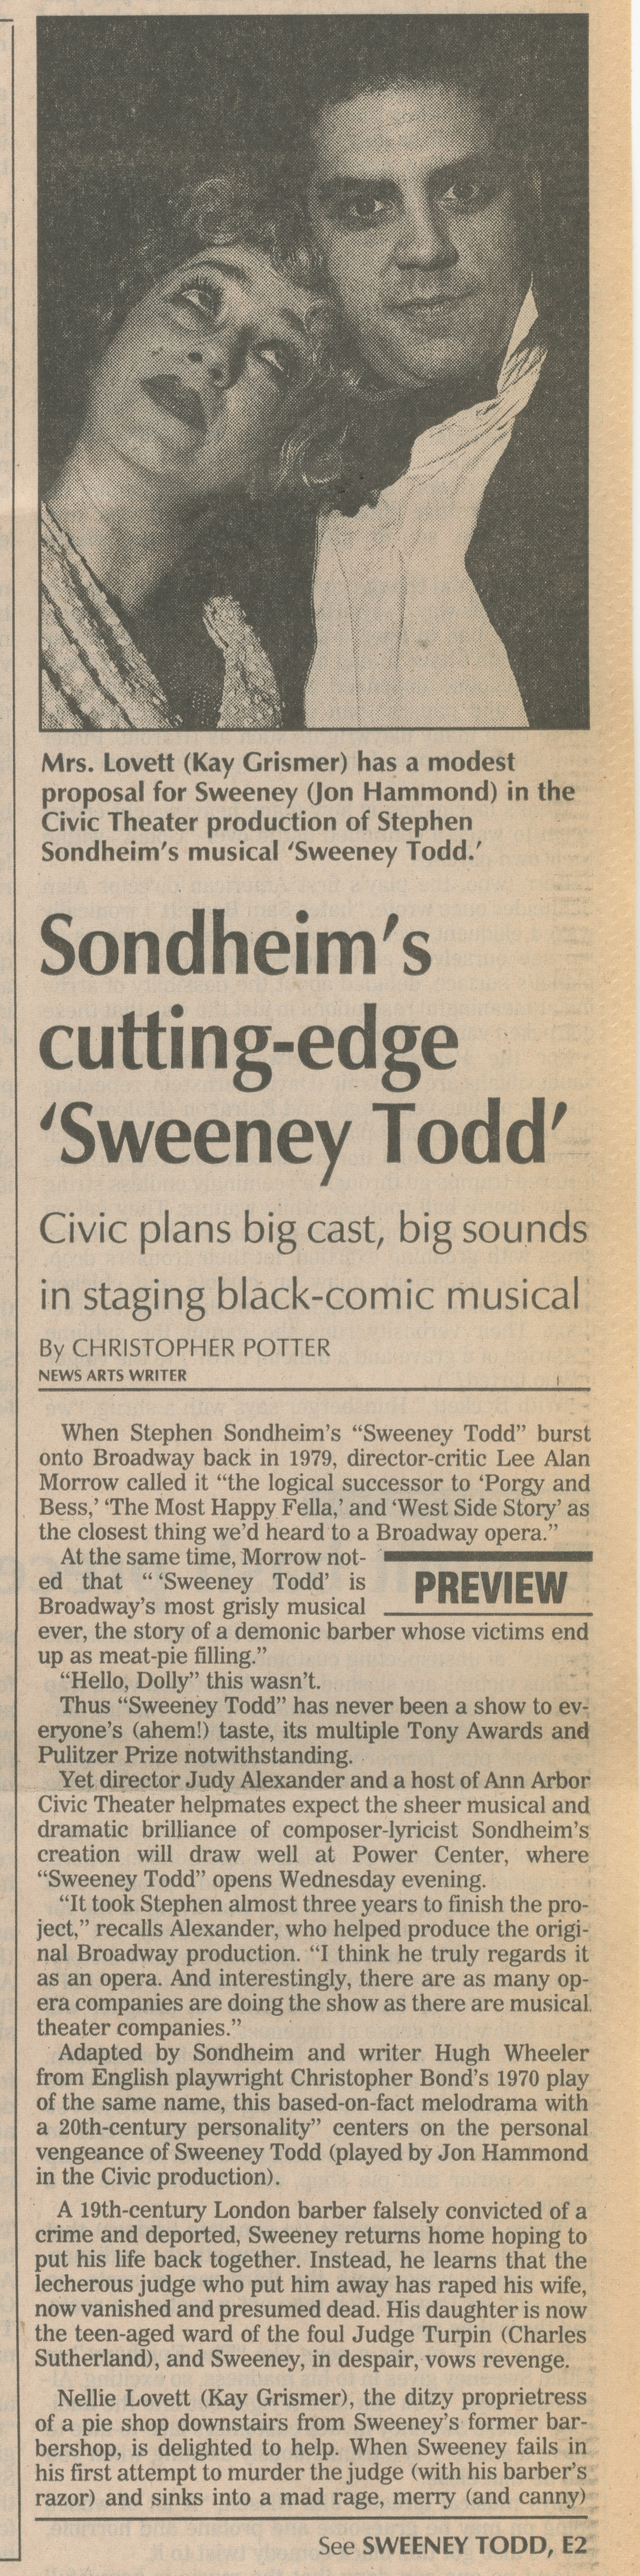 Sondheim's Cutting-Edge 'Sweeney Todd' image